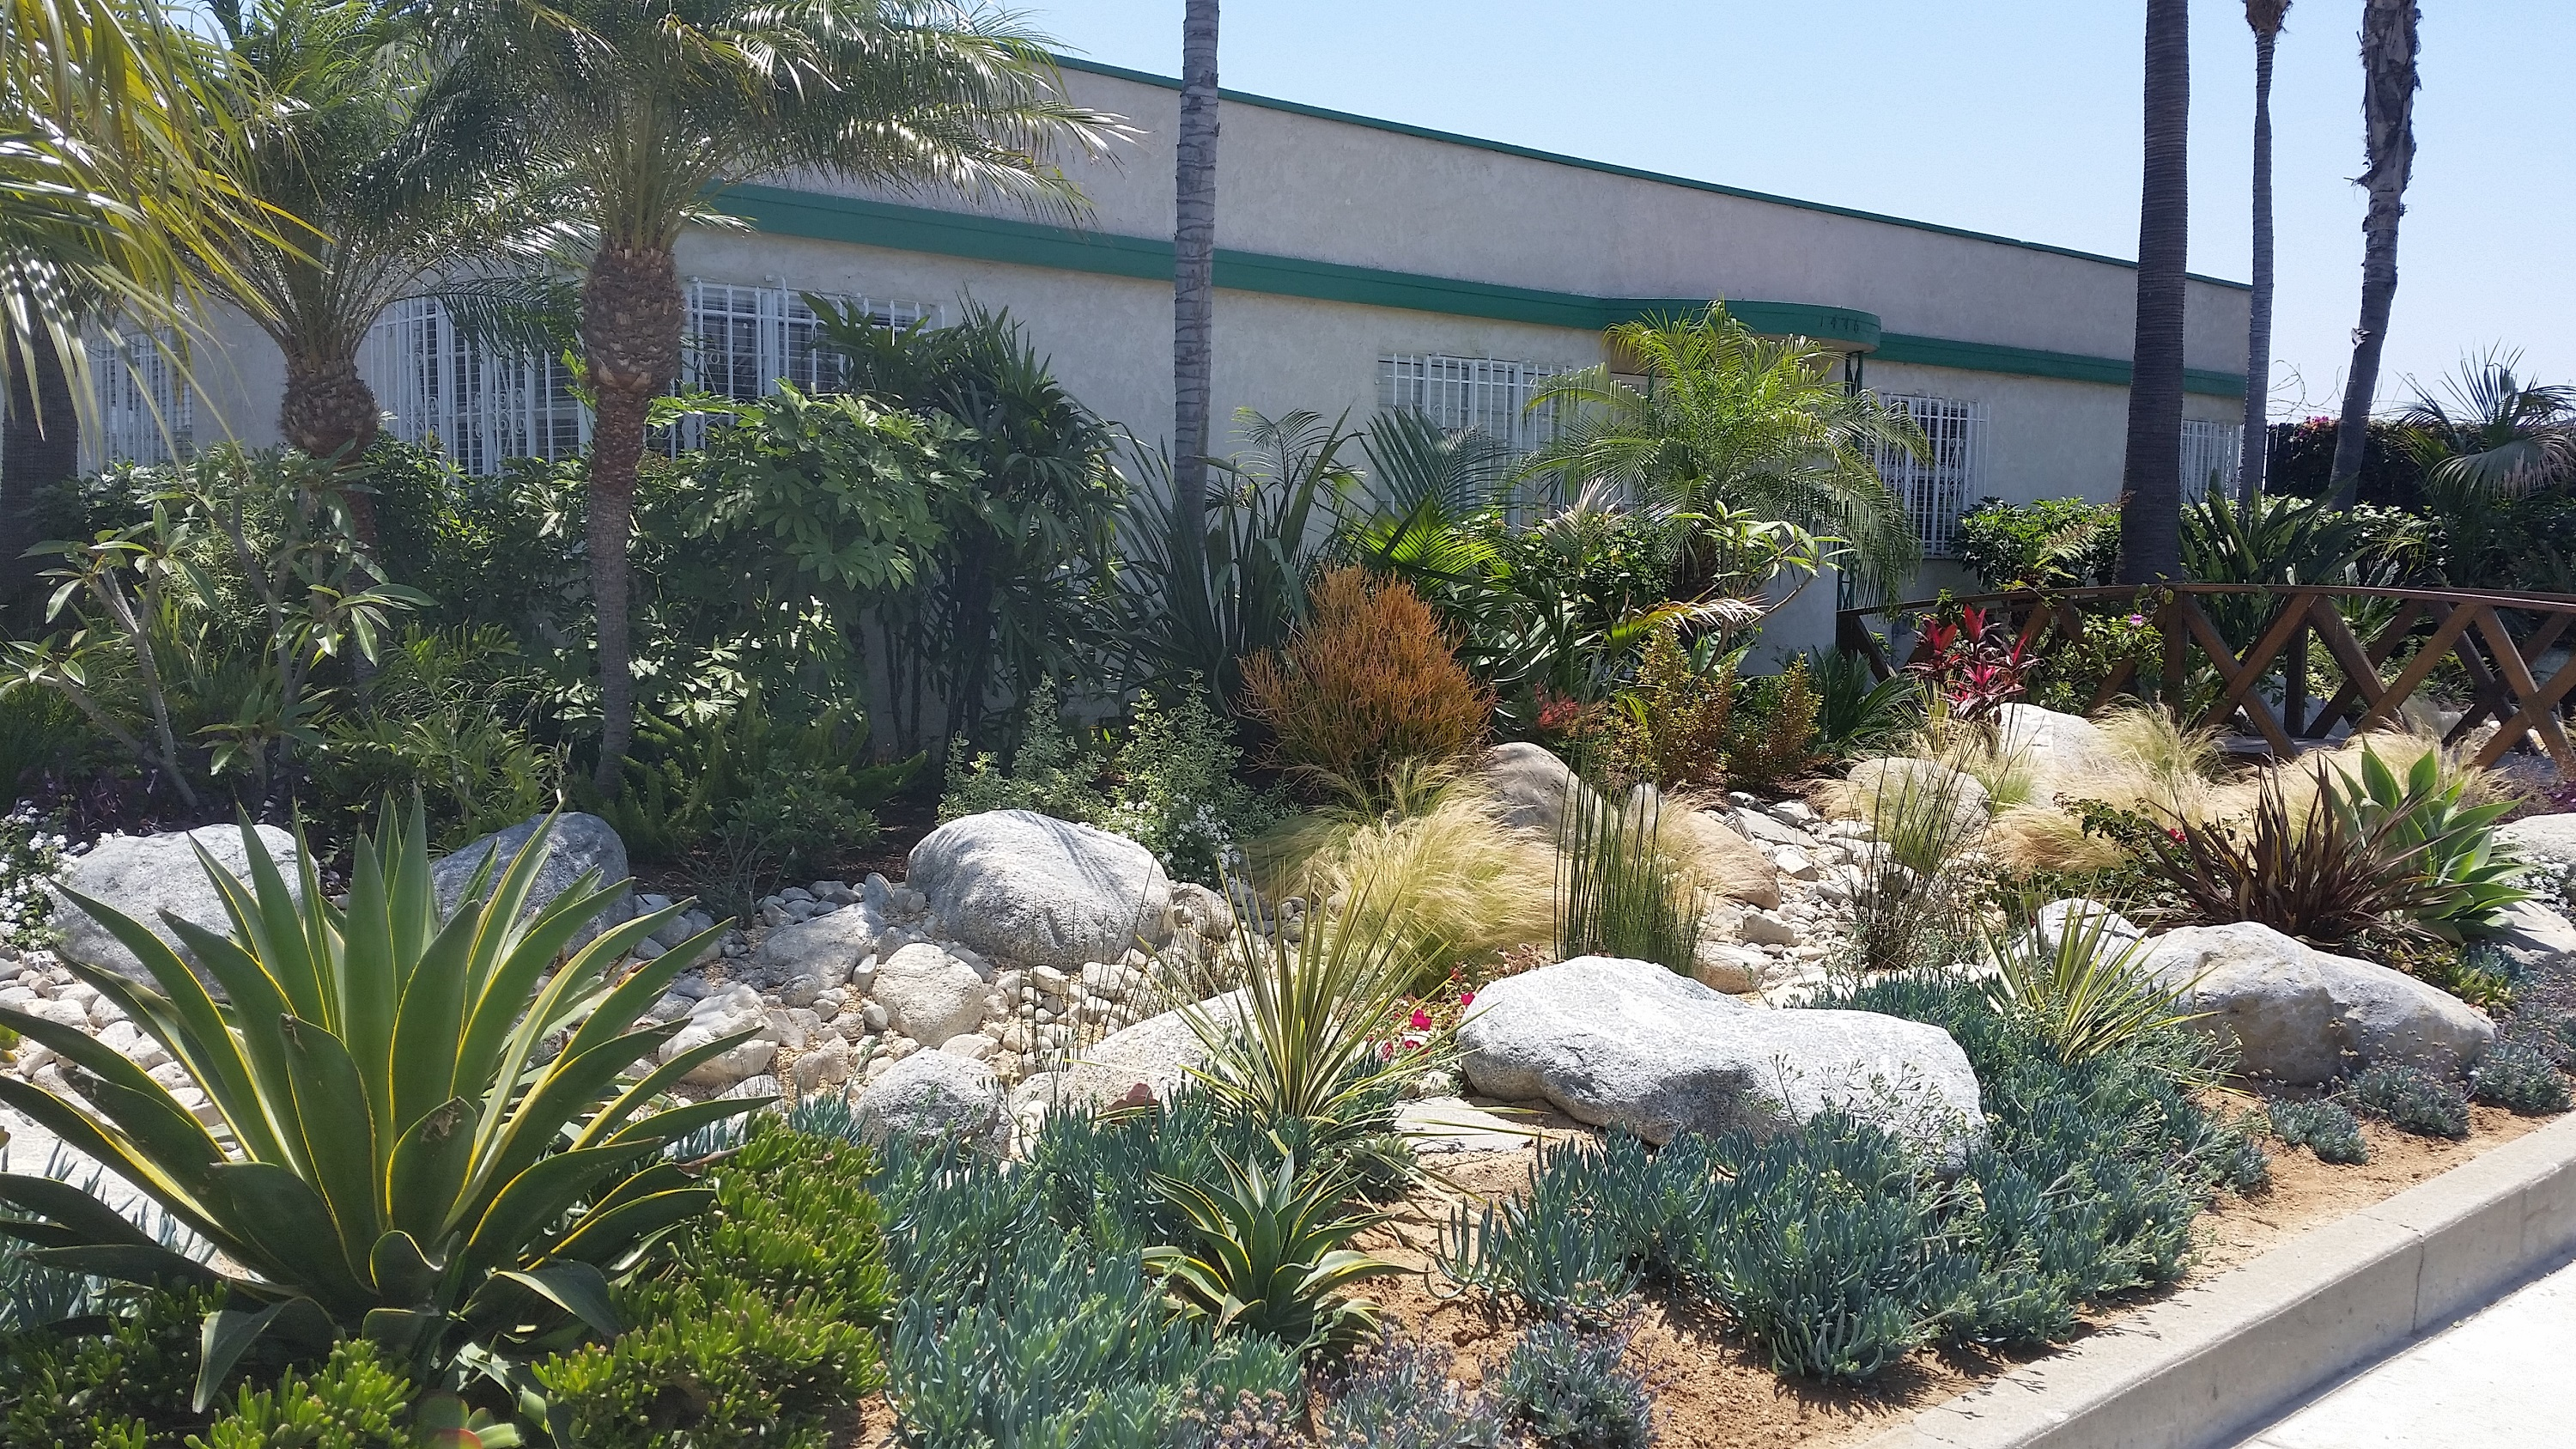 Xeric garden with rocks and plats beside a building